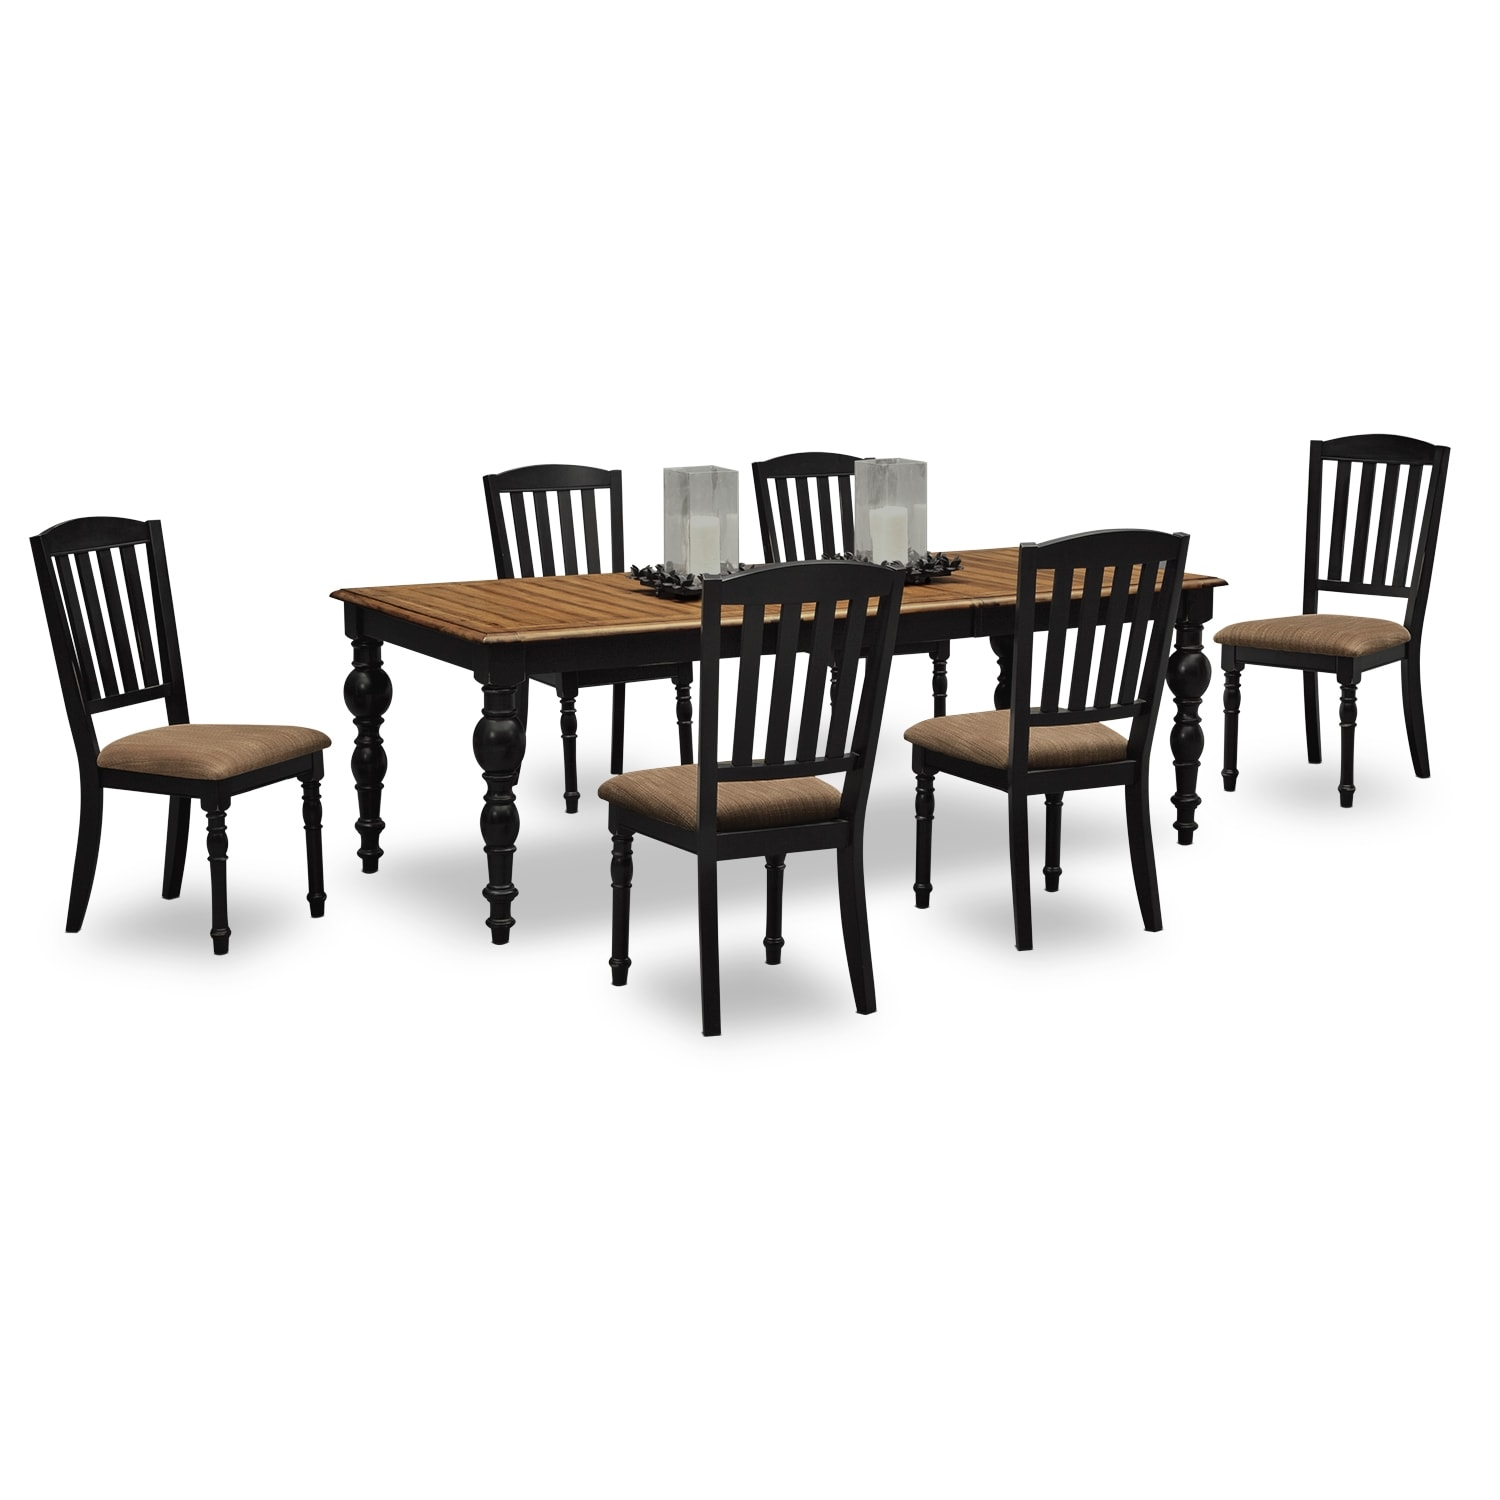 Castleton Furniture Stores Furniture Table Styles